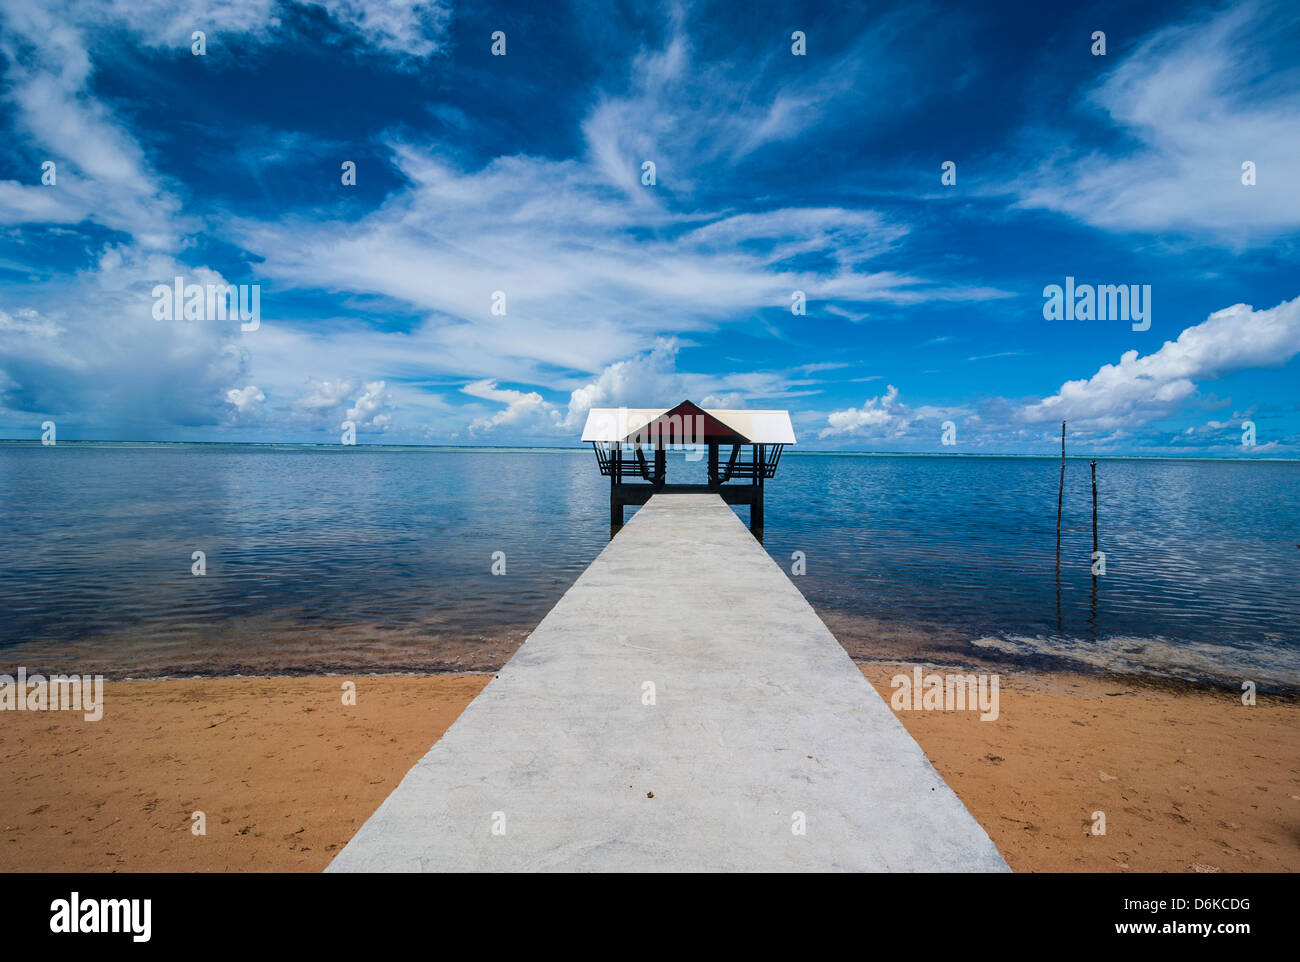 Boat pier in the north of the Island of Babeldoab, Palau, Central Pacific, Pacific - Stock Image